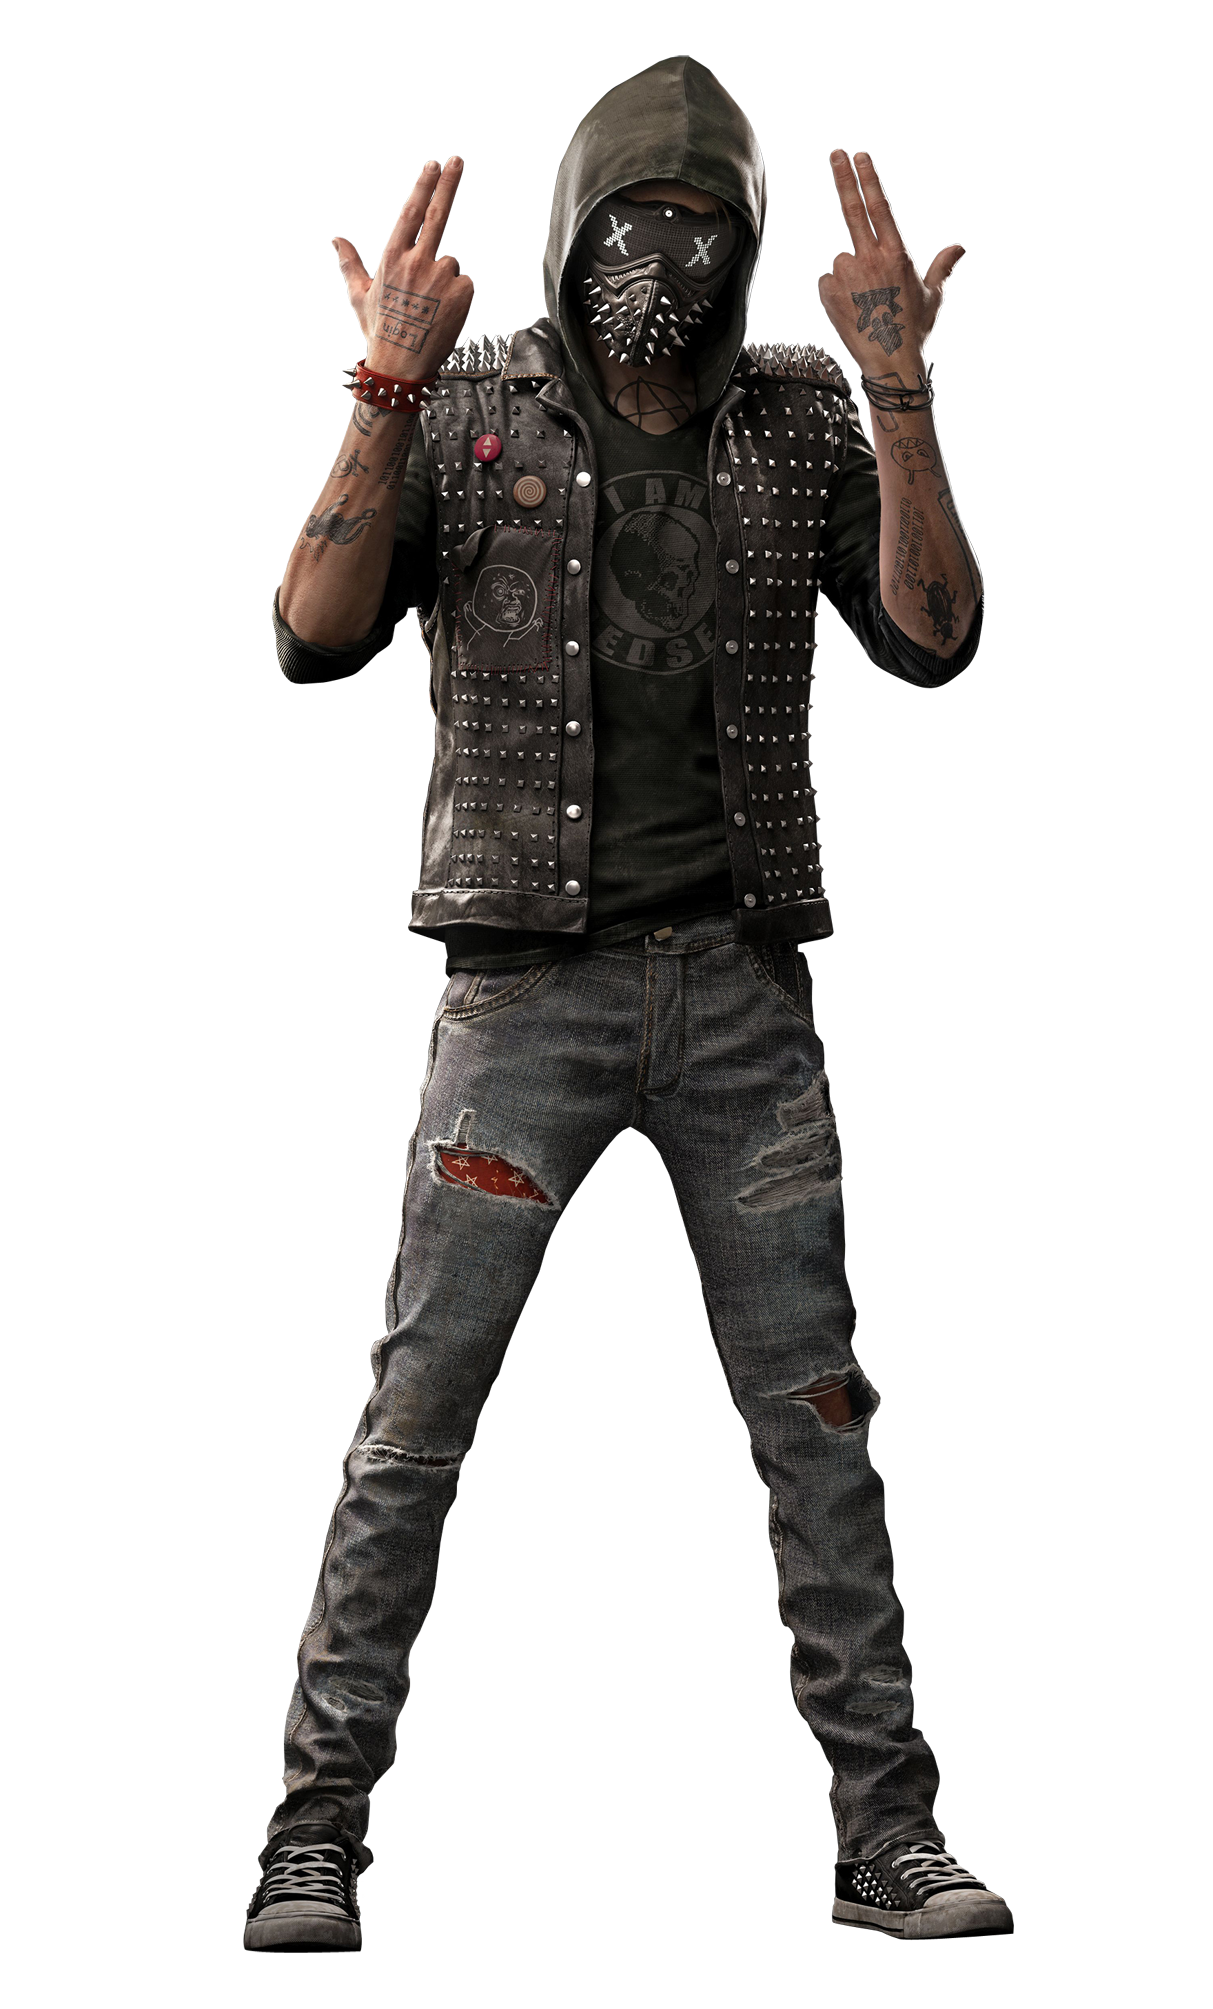 Watch_dogs png gangster character. Watch dogs hd transparent